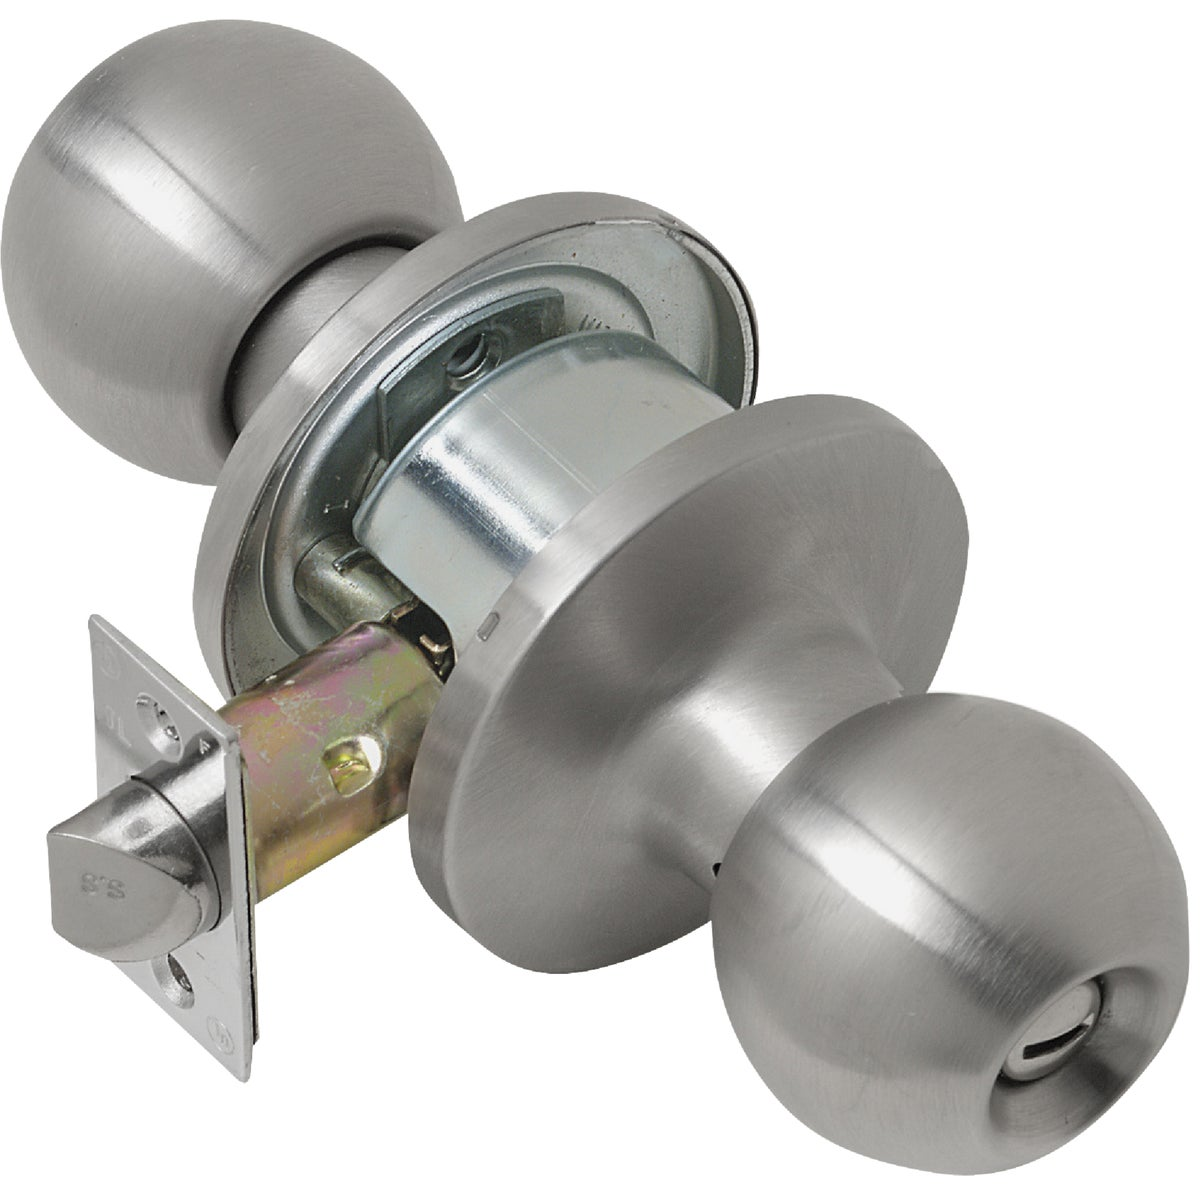 32D LD COMM PRIV KNOB - CL100052 by Tell Mfg Inc